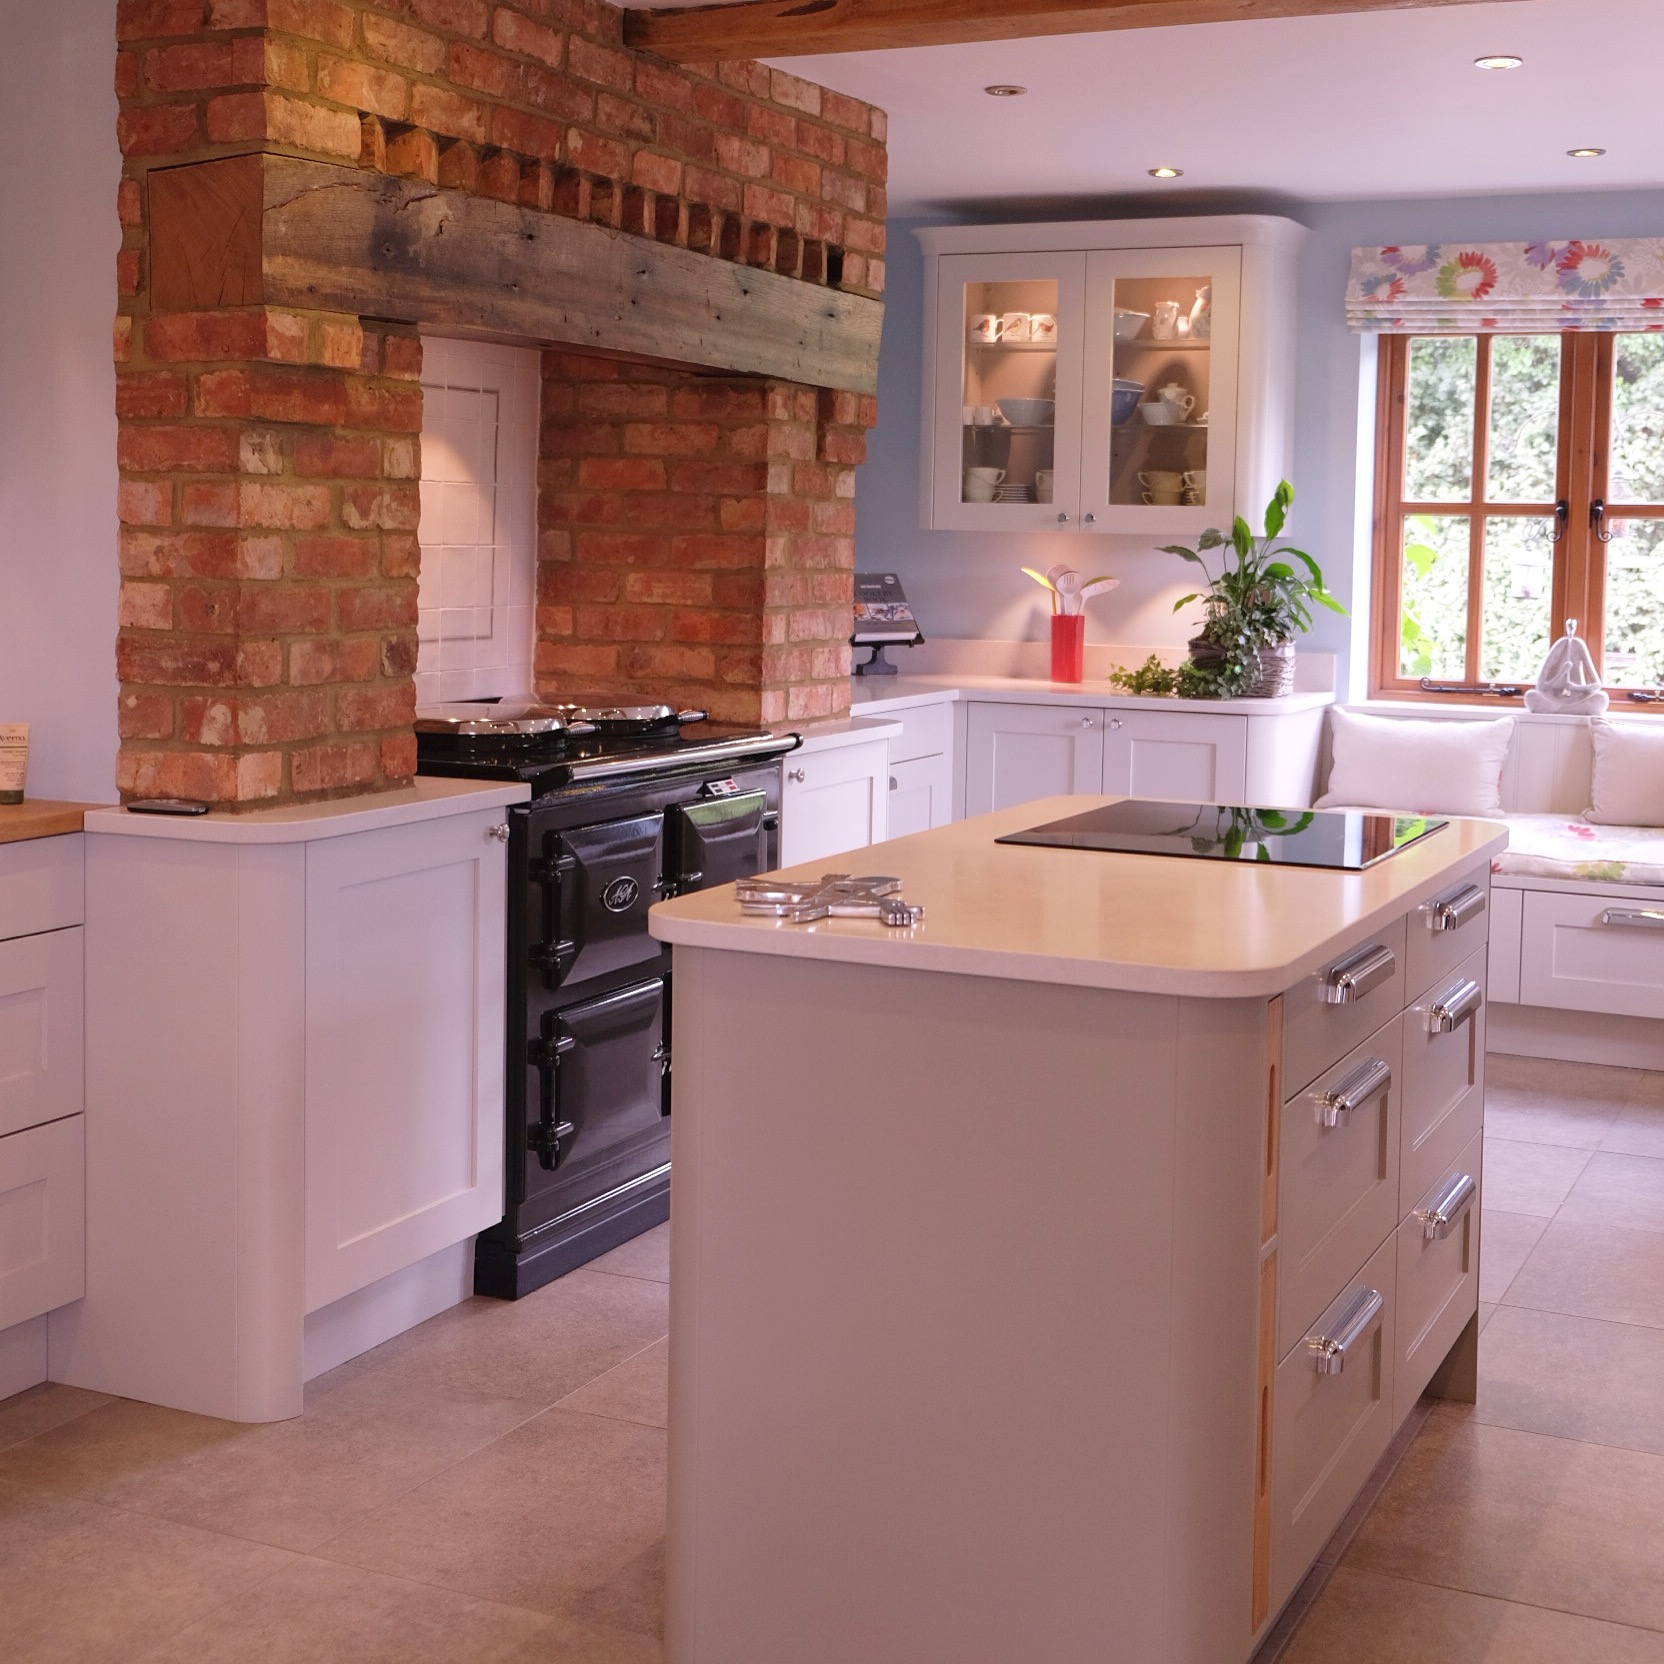 Completed - Another Handmade In Hitchin Kitchen